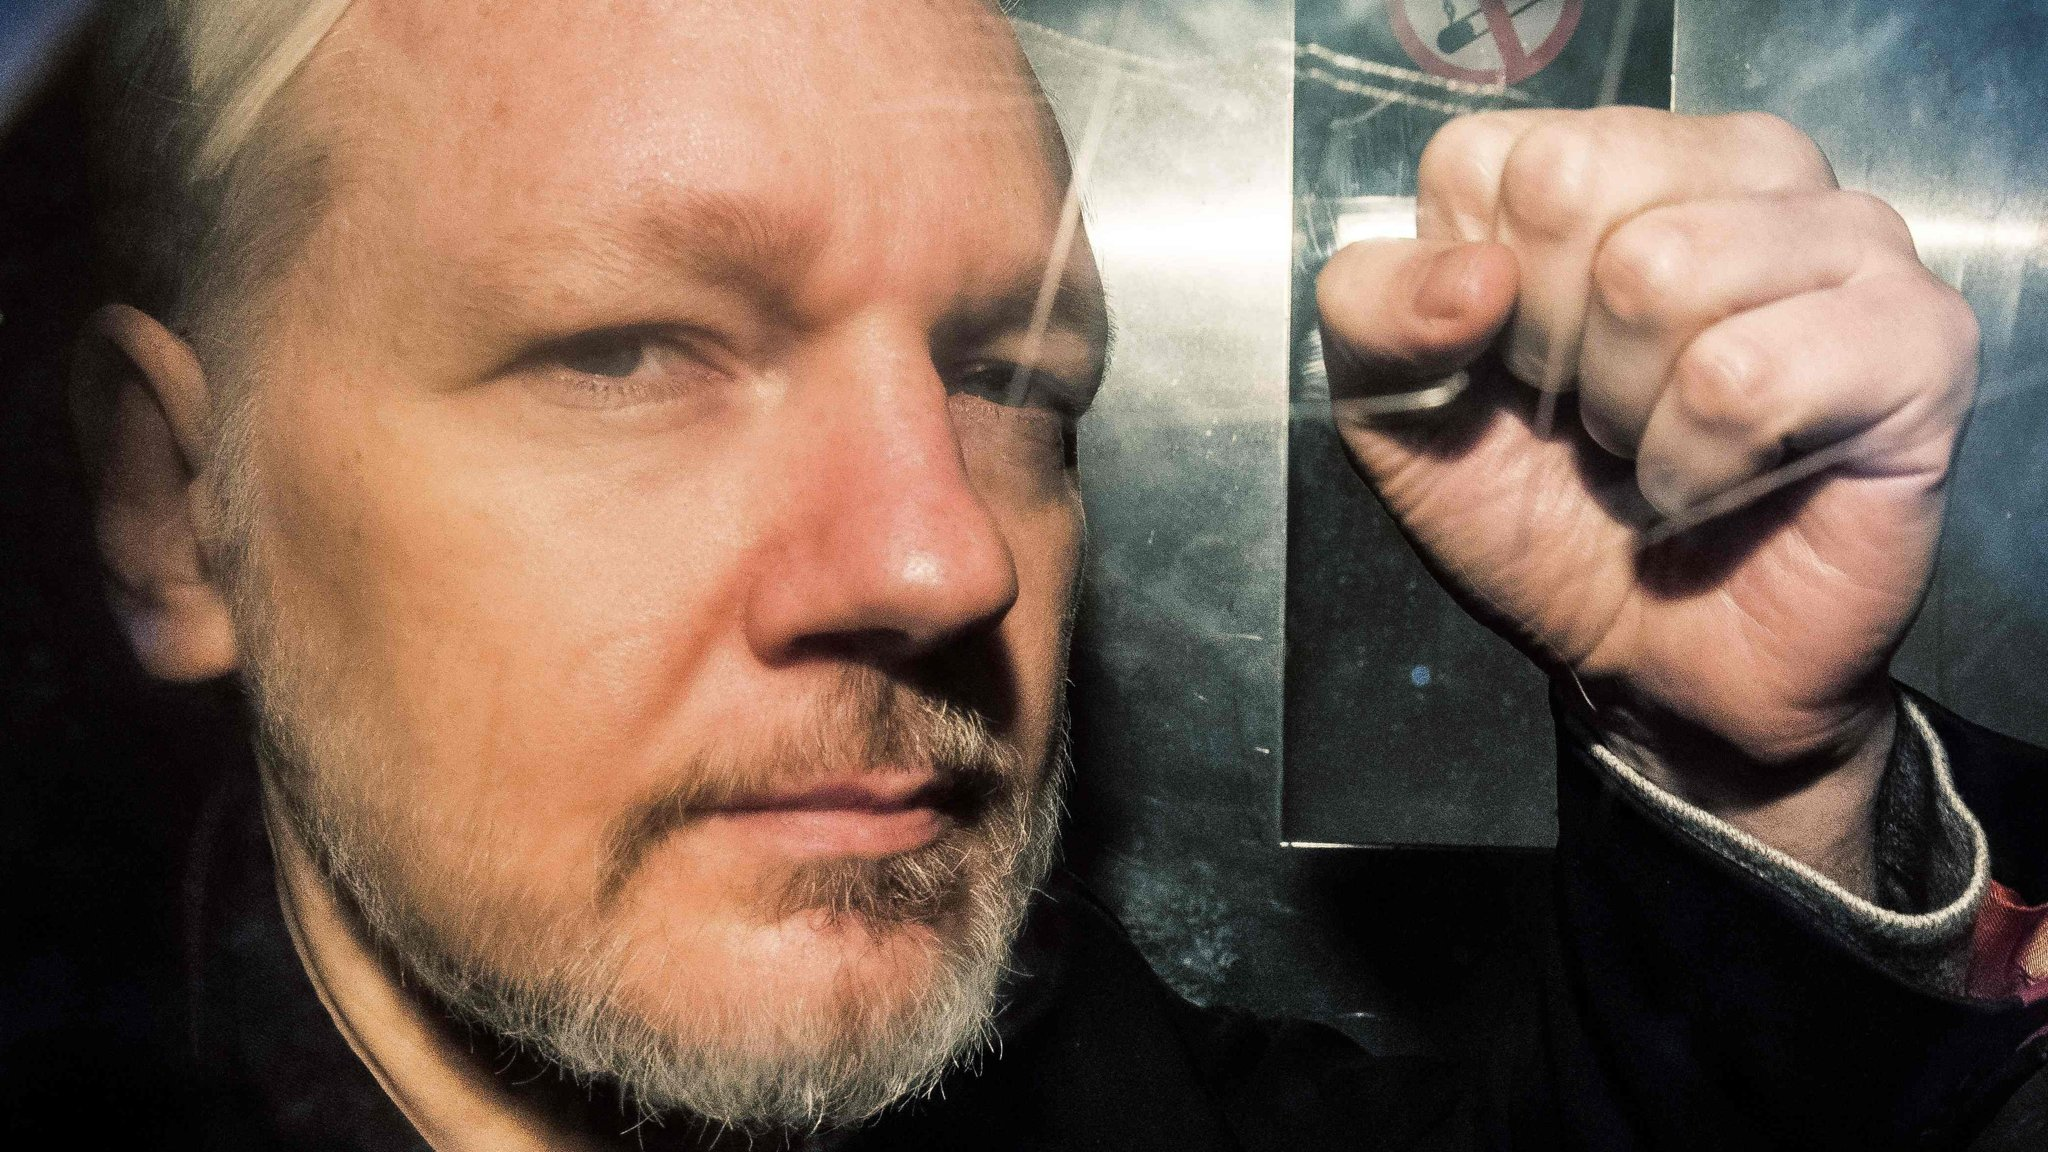 UK home secretary signs Julian Assange extradition warrant